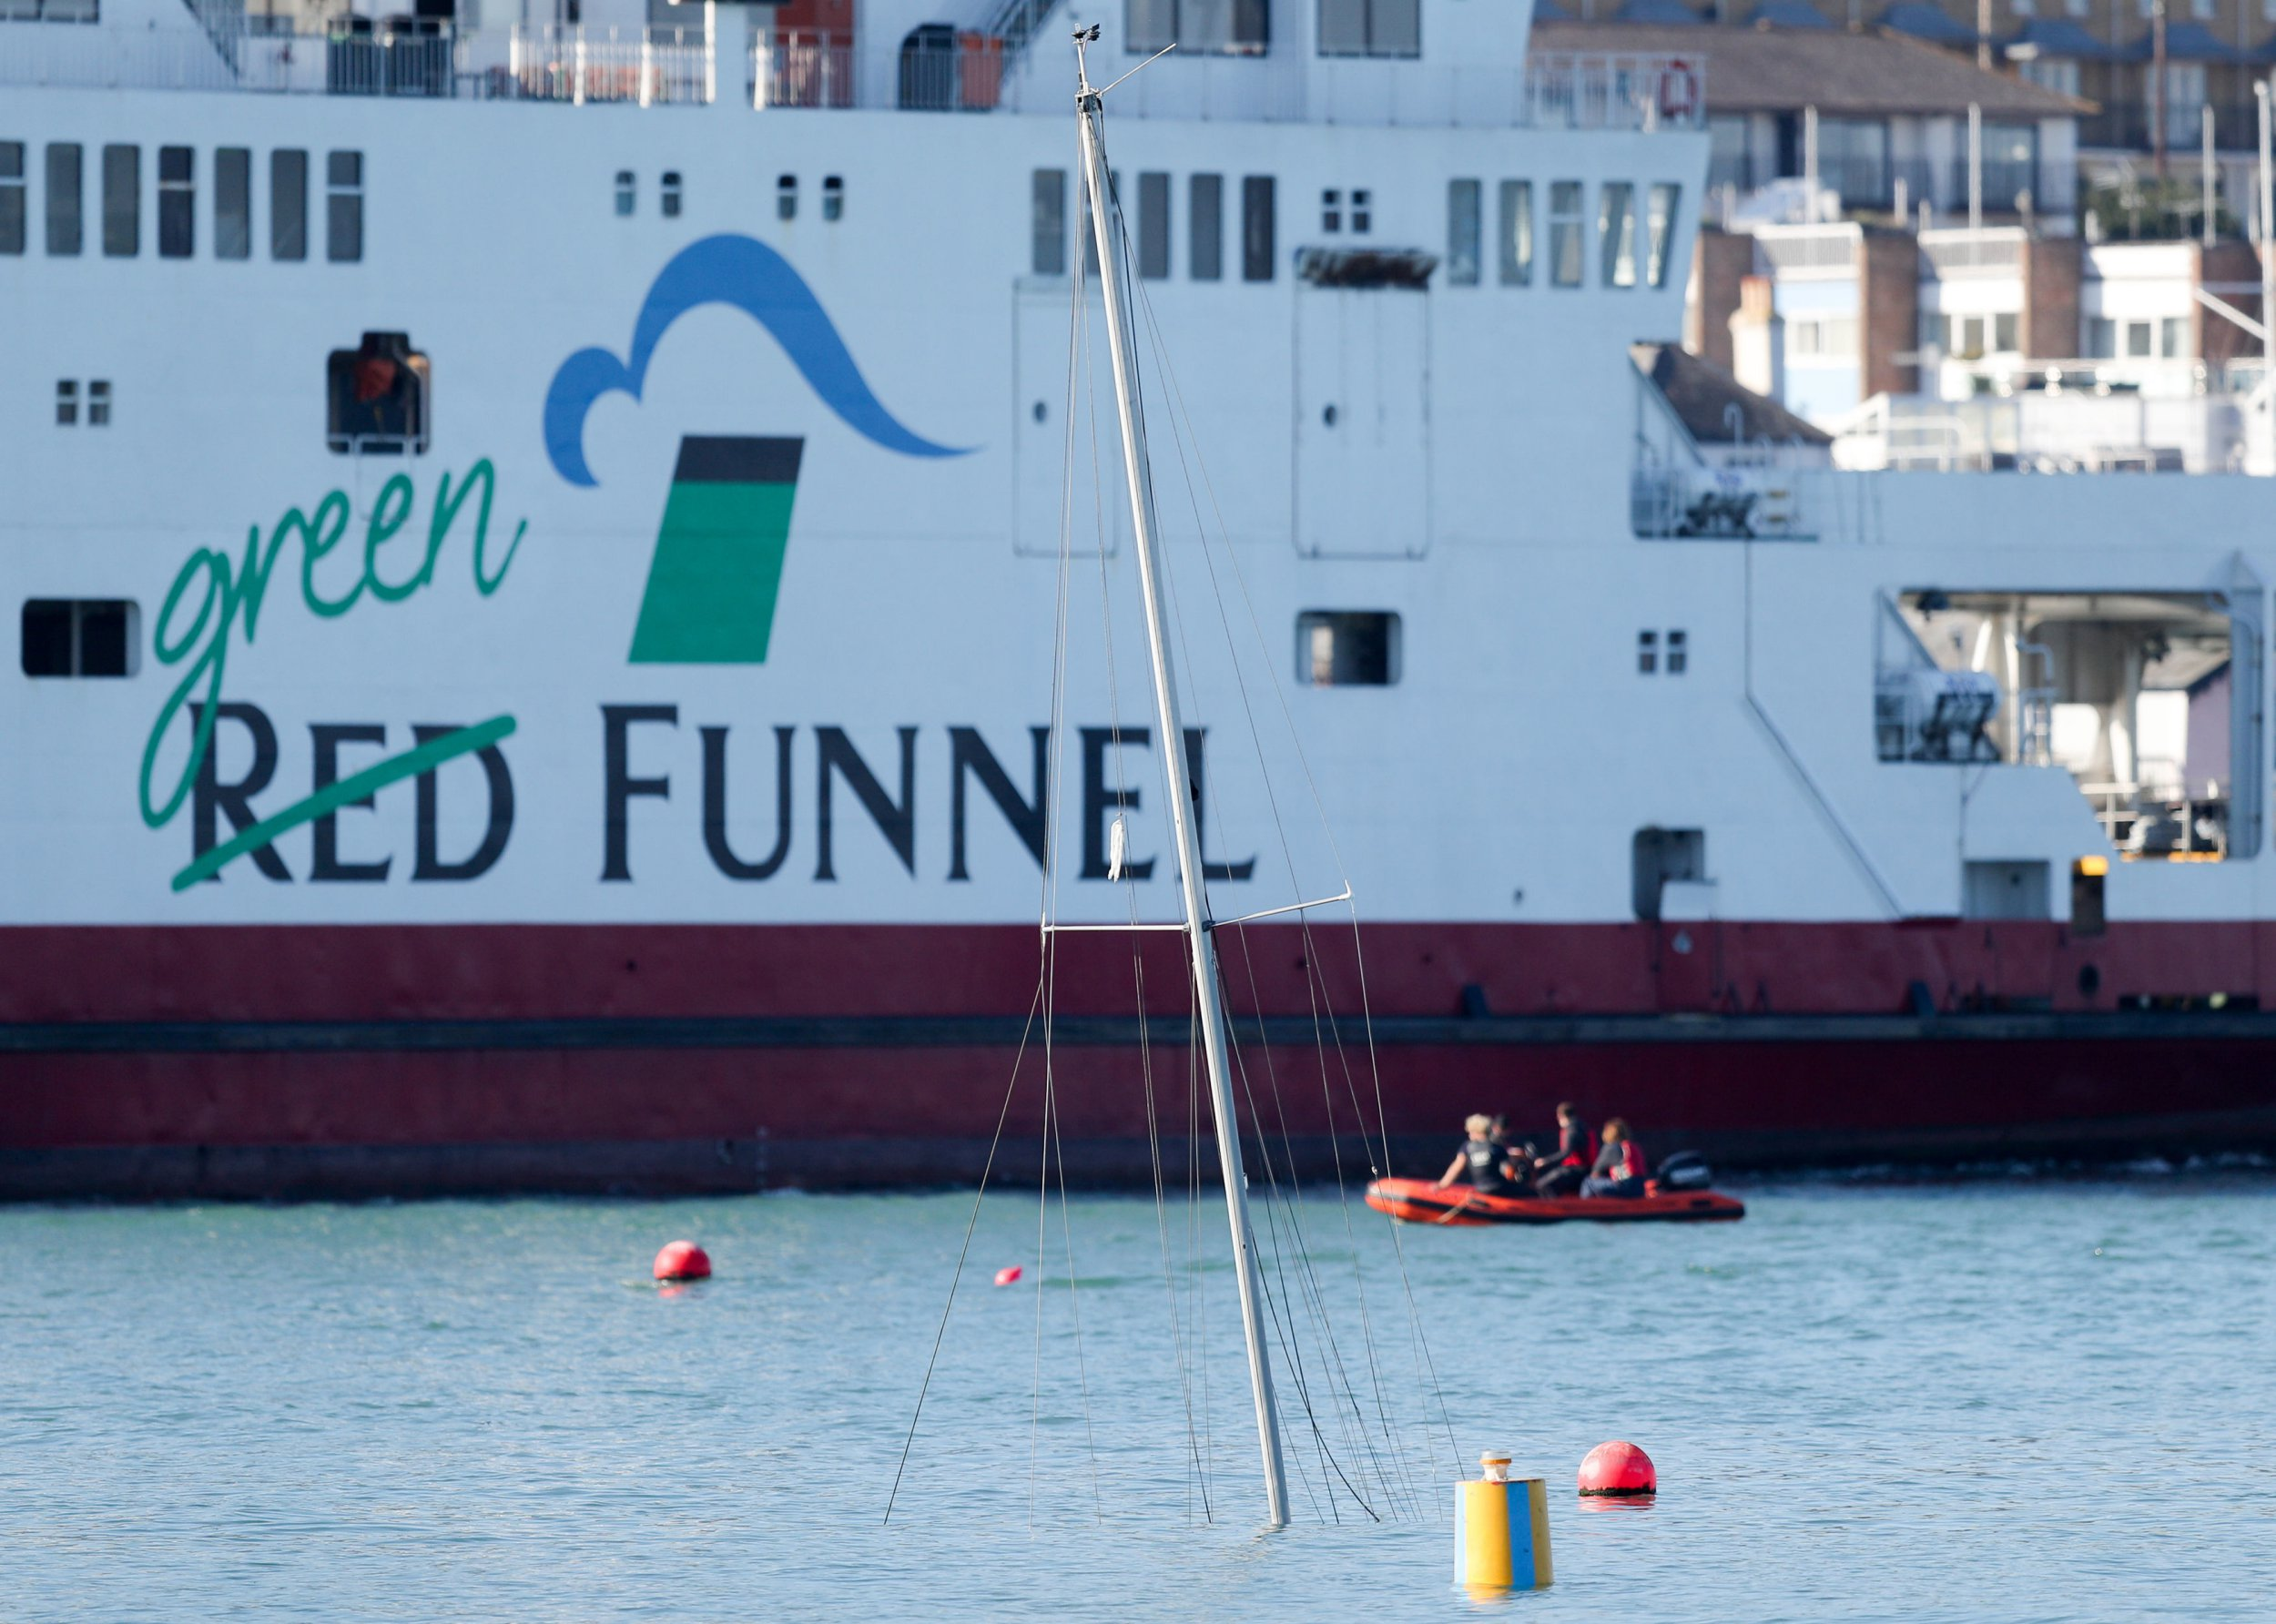 The Red Funnel car ferry, Red Falcon, which earlier collided with several small boats due to bad weather, passes the mast of a submerged yacht as she leaves East Cowes on the Isle of Wight bound for Southampton. PRESS ASSOCIATION Photo. Picture date: Sunday October 21, 2018. See PA story ACCIDENT Ferry. Photo credit should read: Andrew Matthews/PA Wire